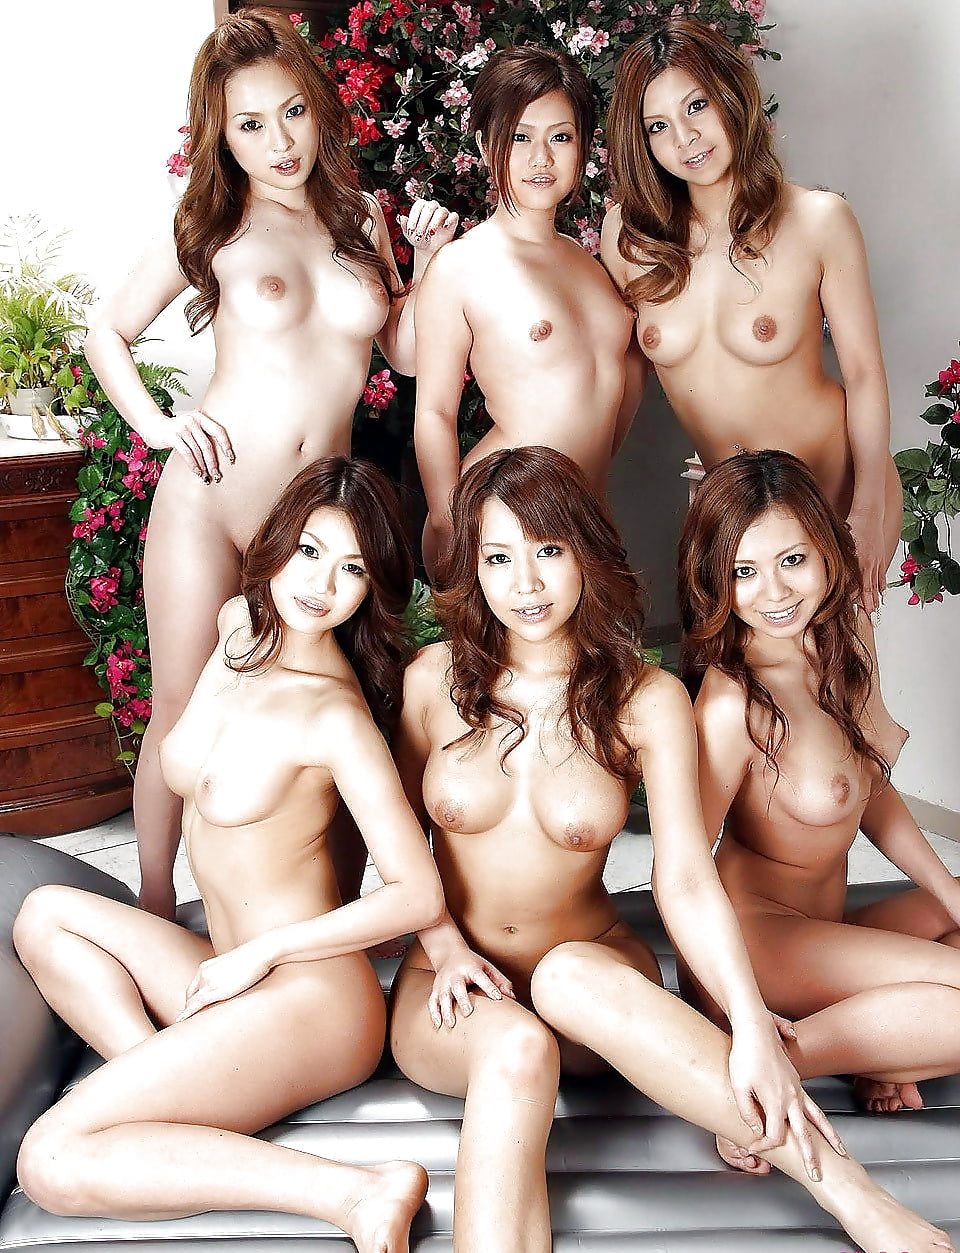 Nude sexy japanese college girls, nicest girls ass m